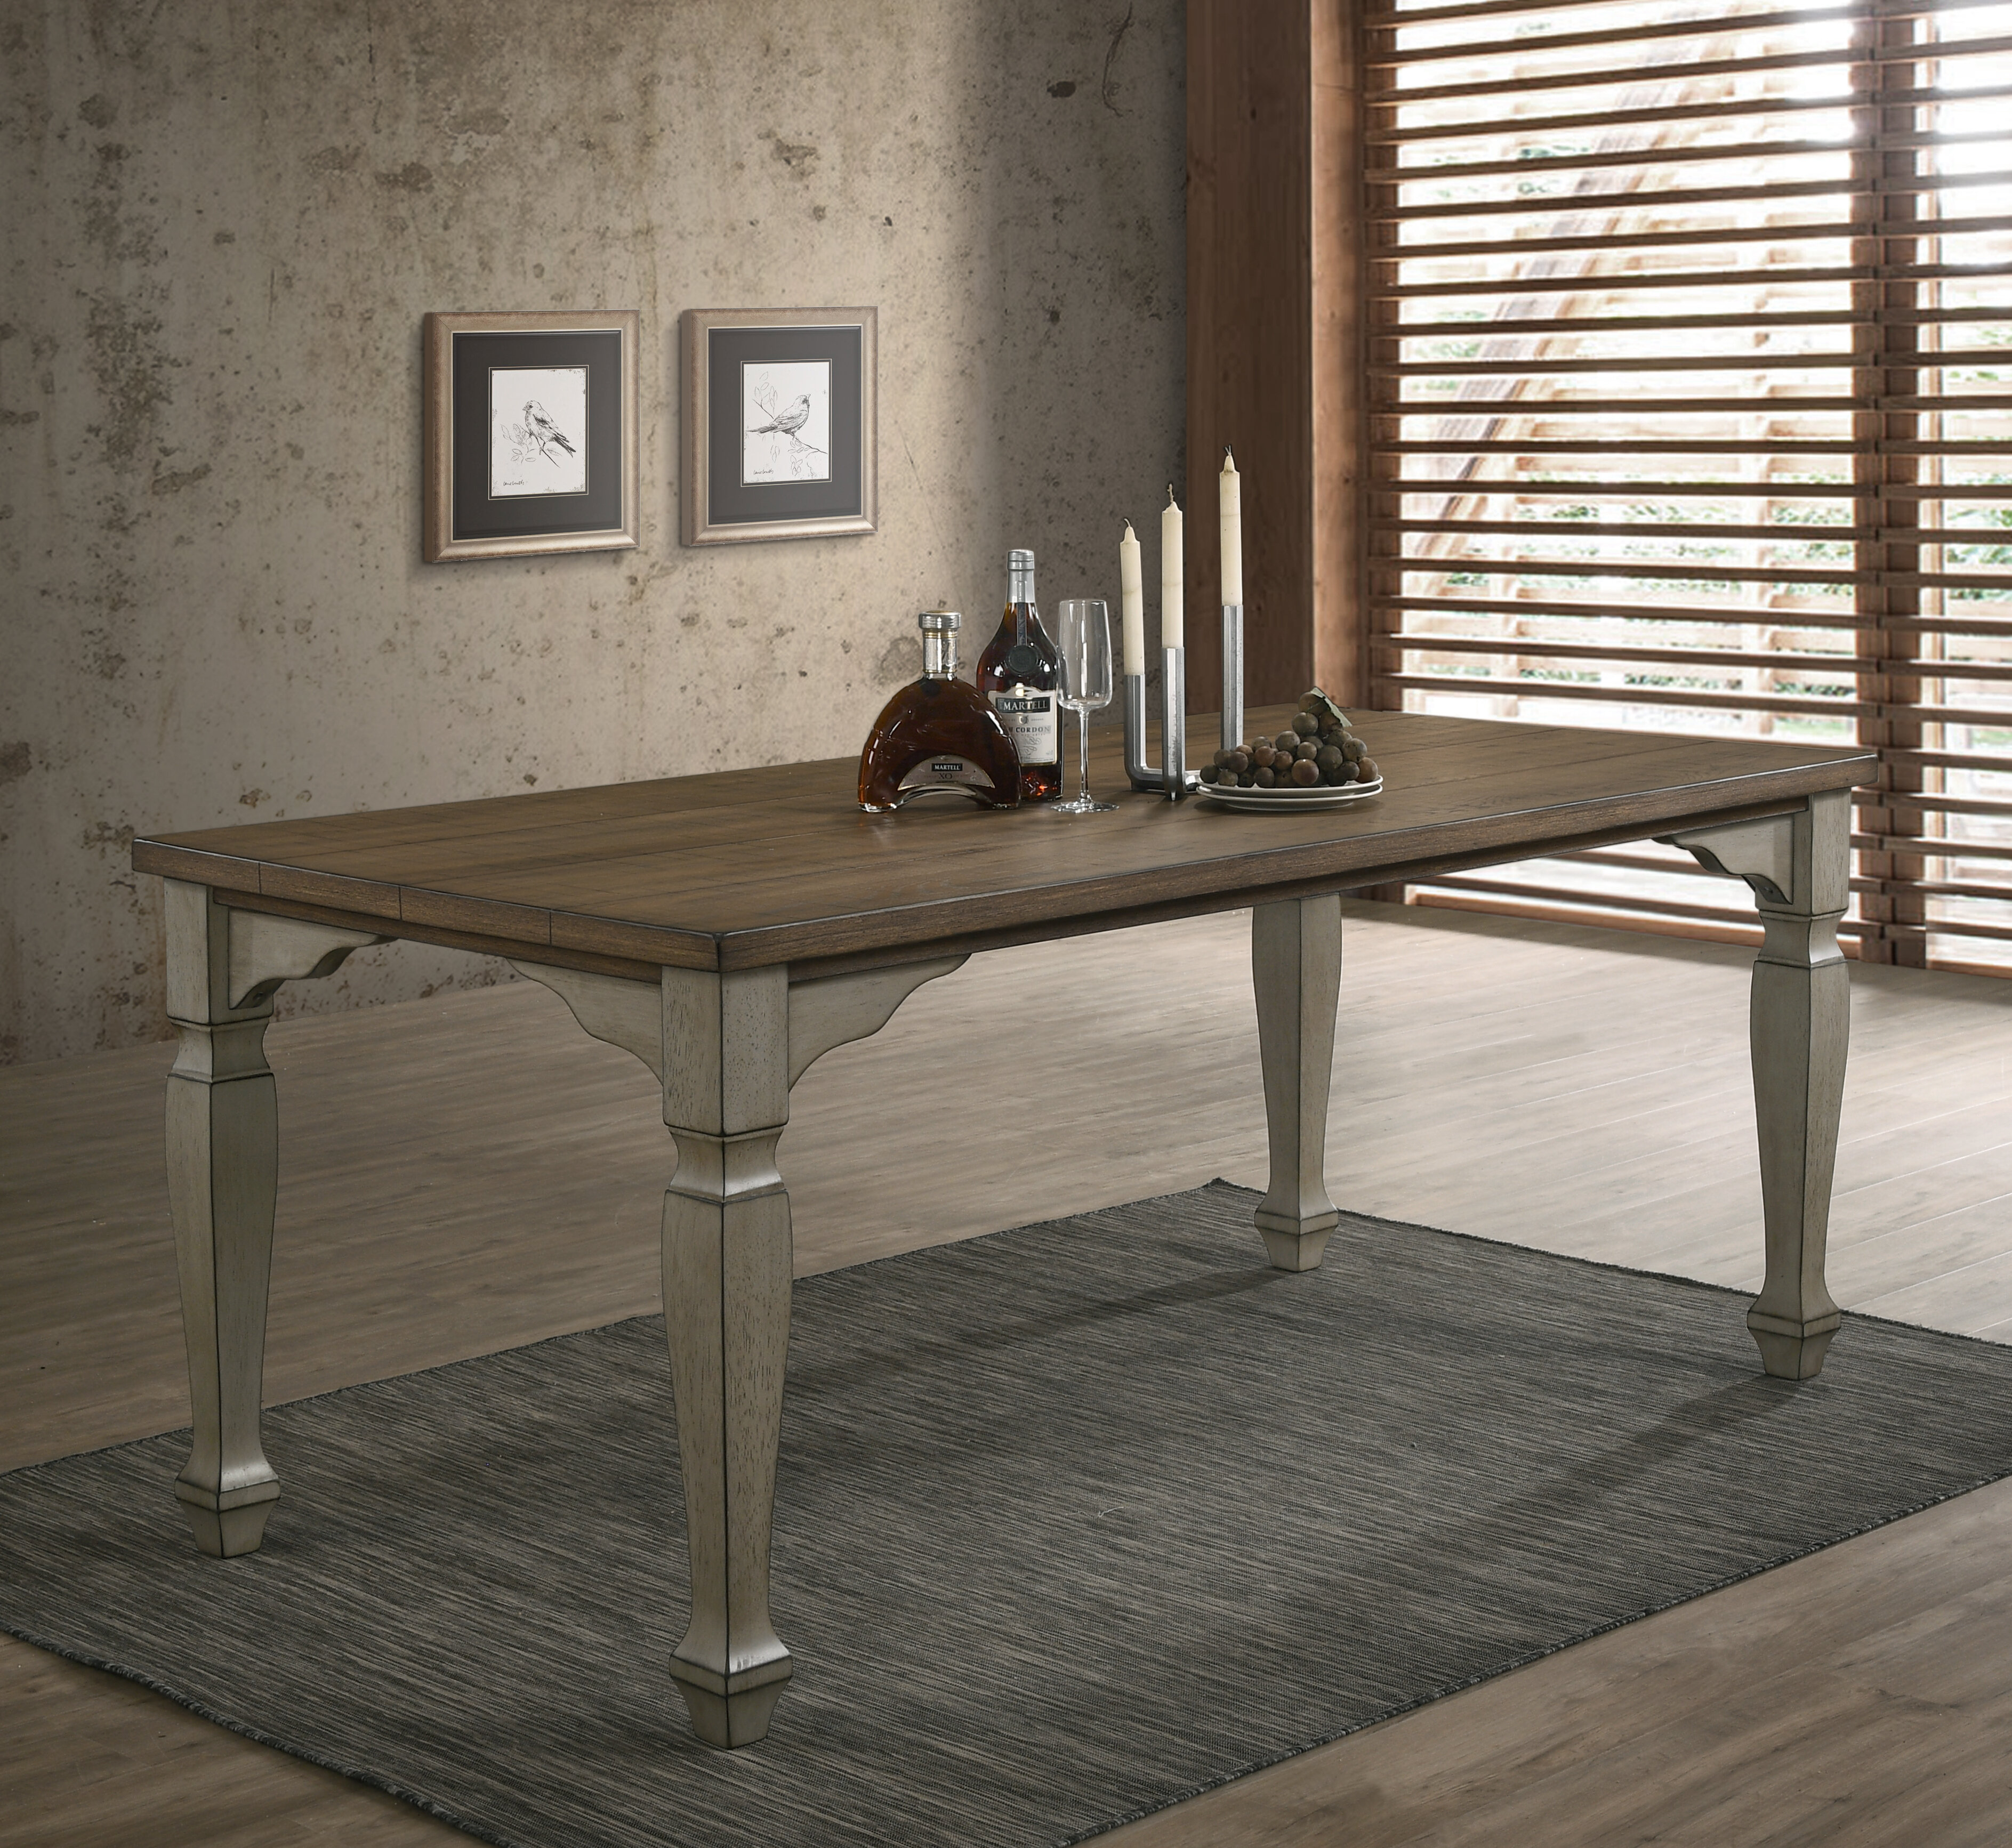 Remus Antique Grey And Dark Oak Finished Wood Dining Table